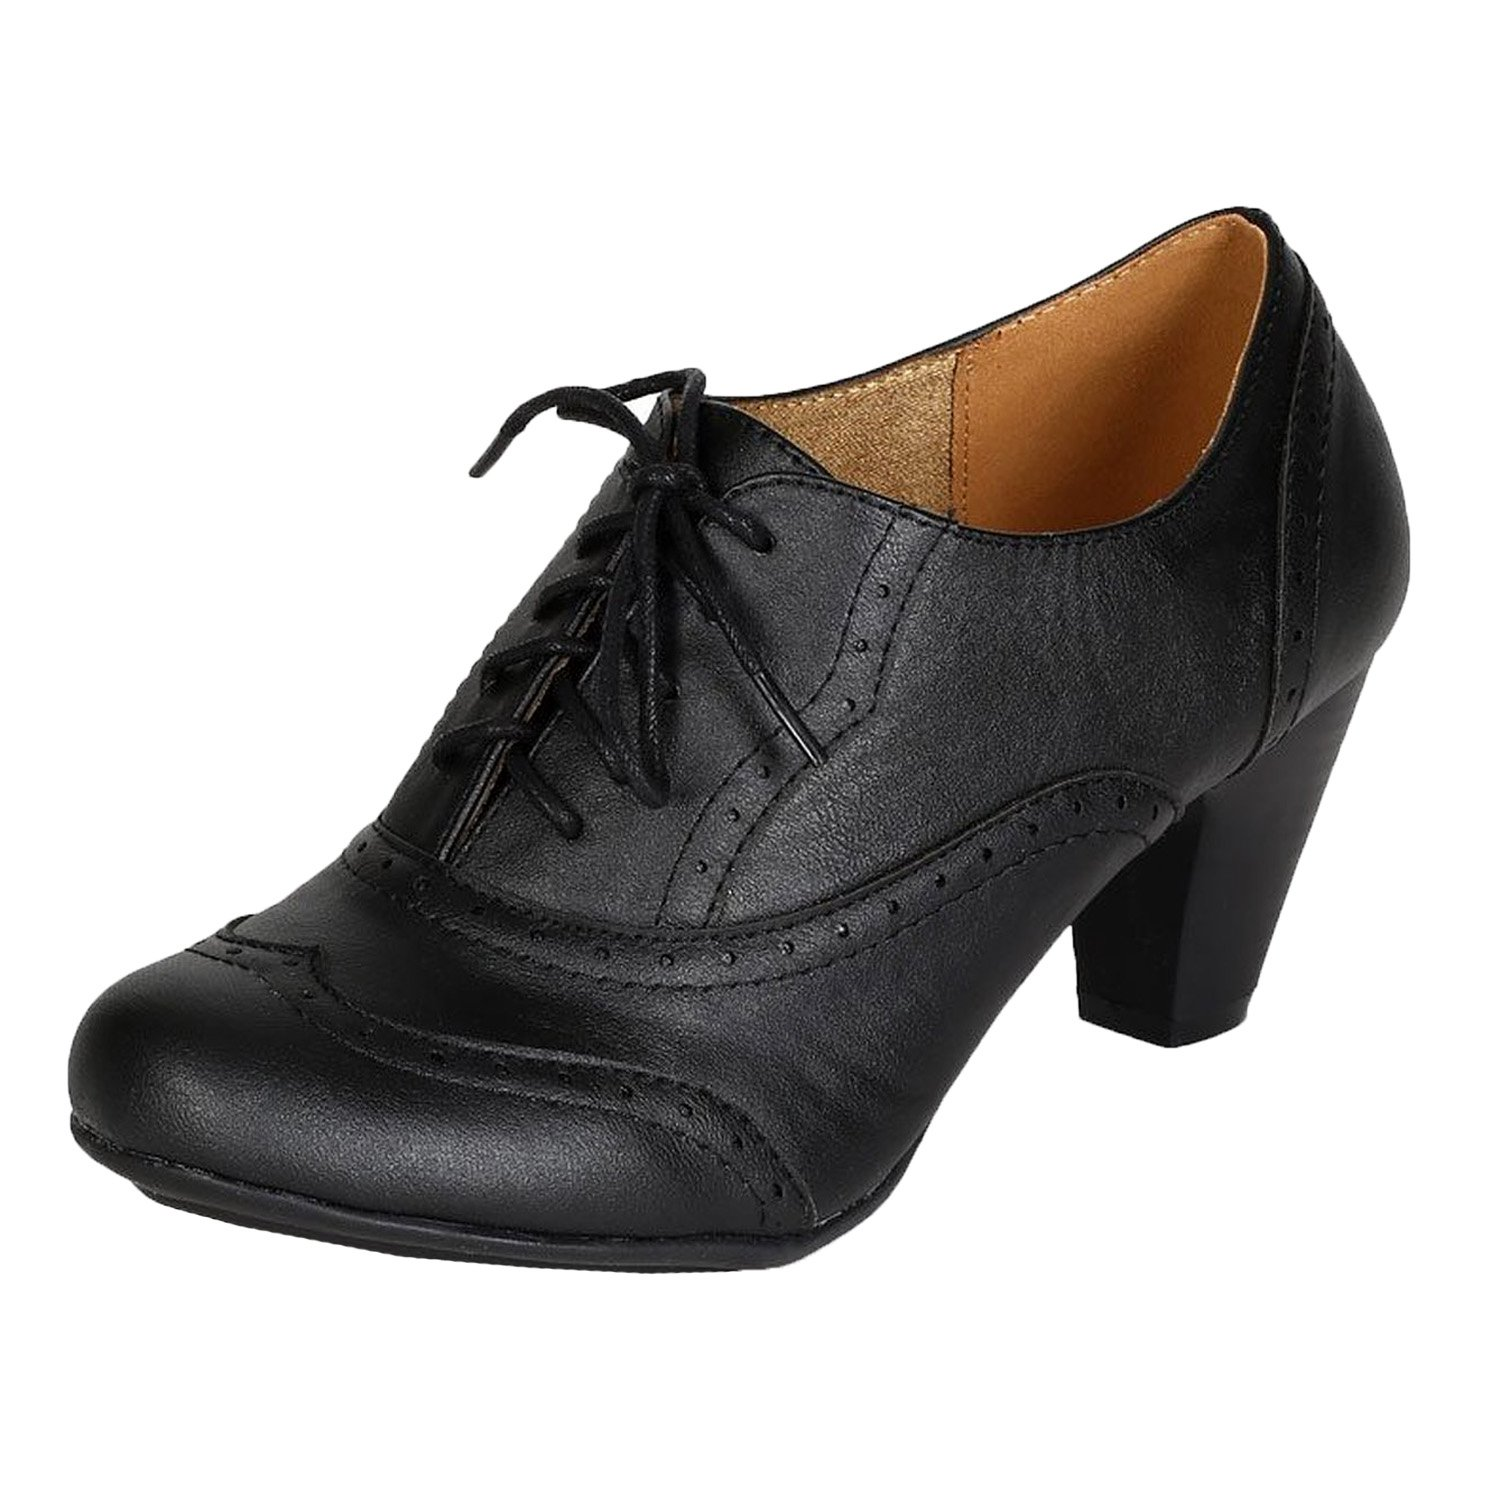 Women Leatherette Lace Up Oxford Chunky Heel Bootie BH50 - Black (Size: 5.5)